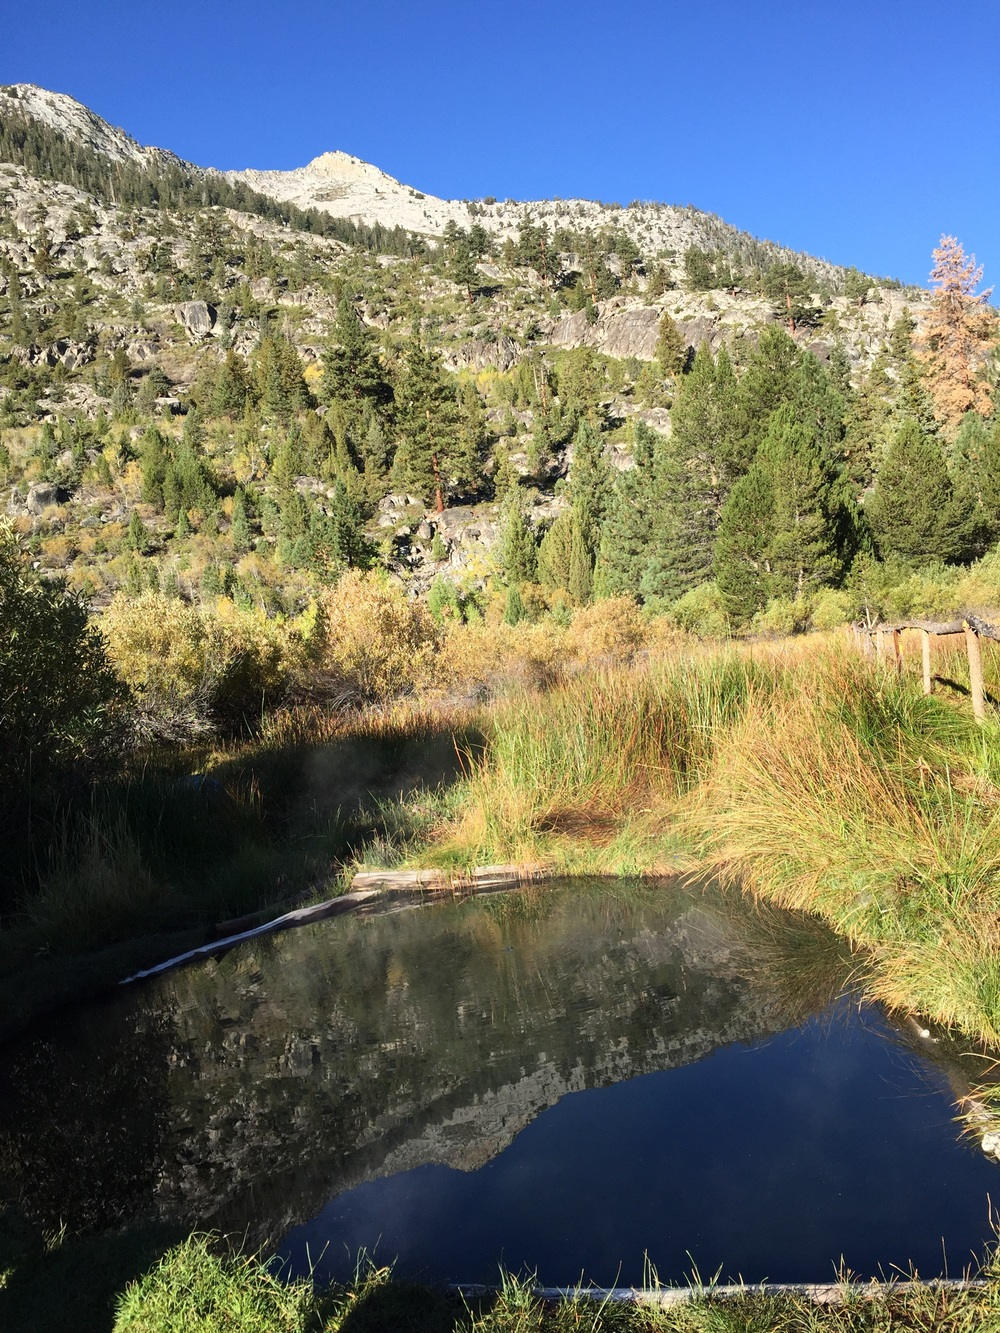 Our private hot spring near Muir Trail Ranch